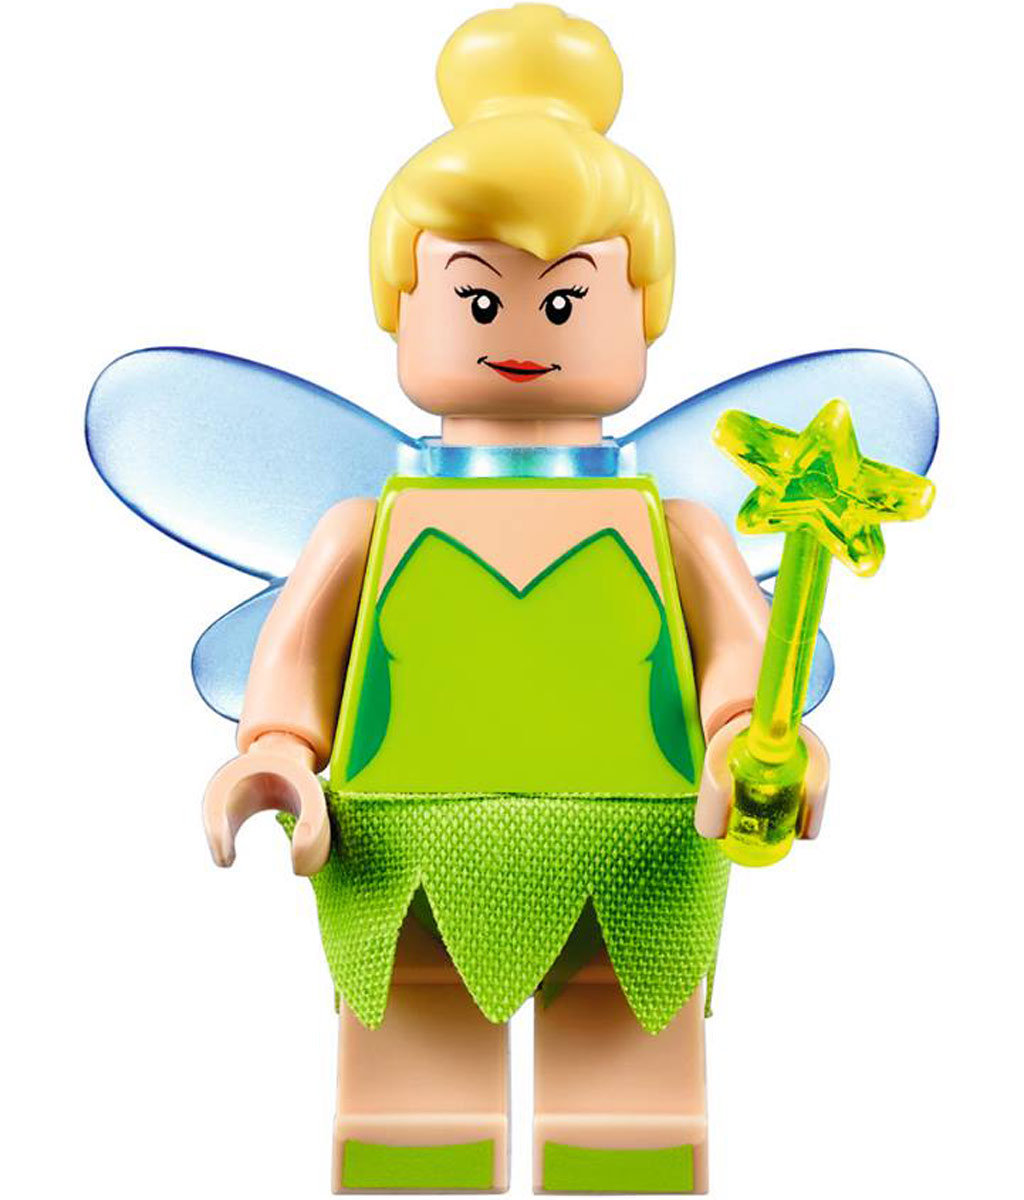 Tinker Bell | © LEGO Group